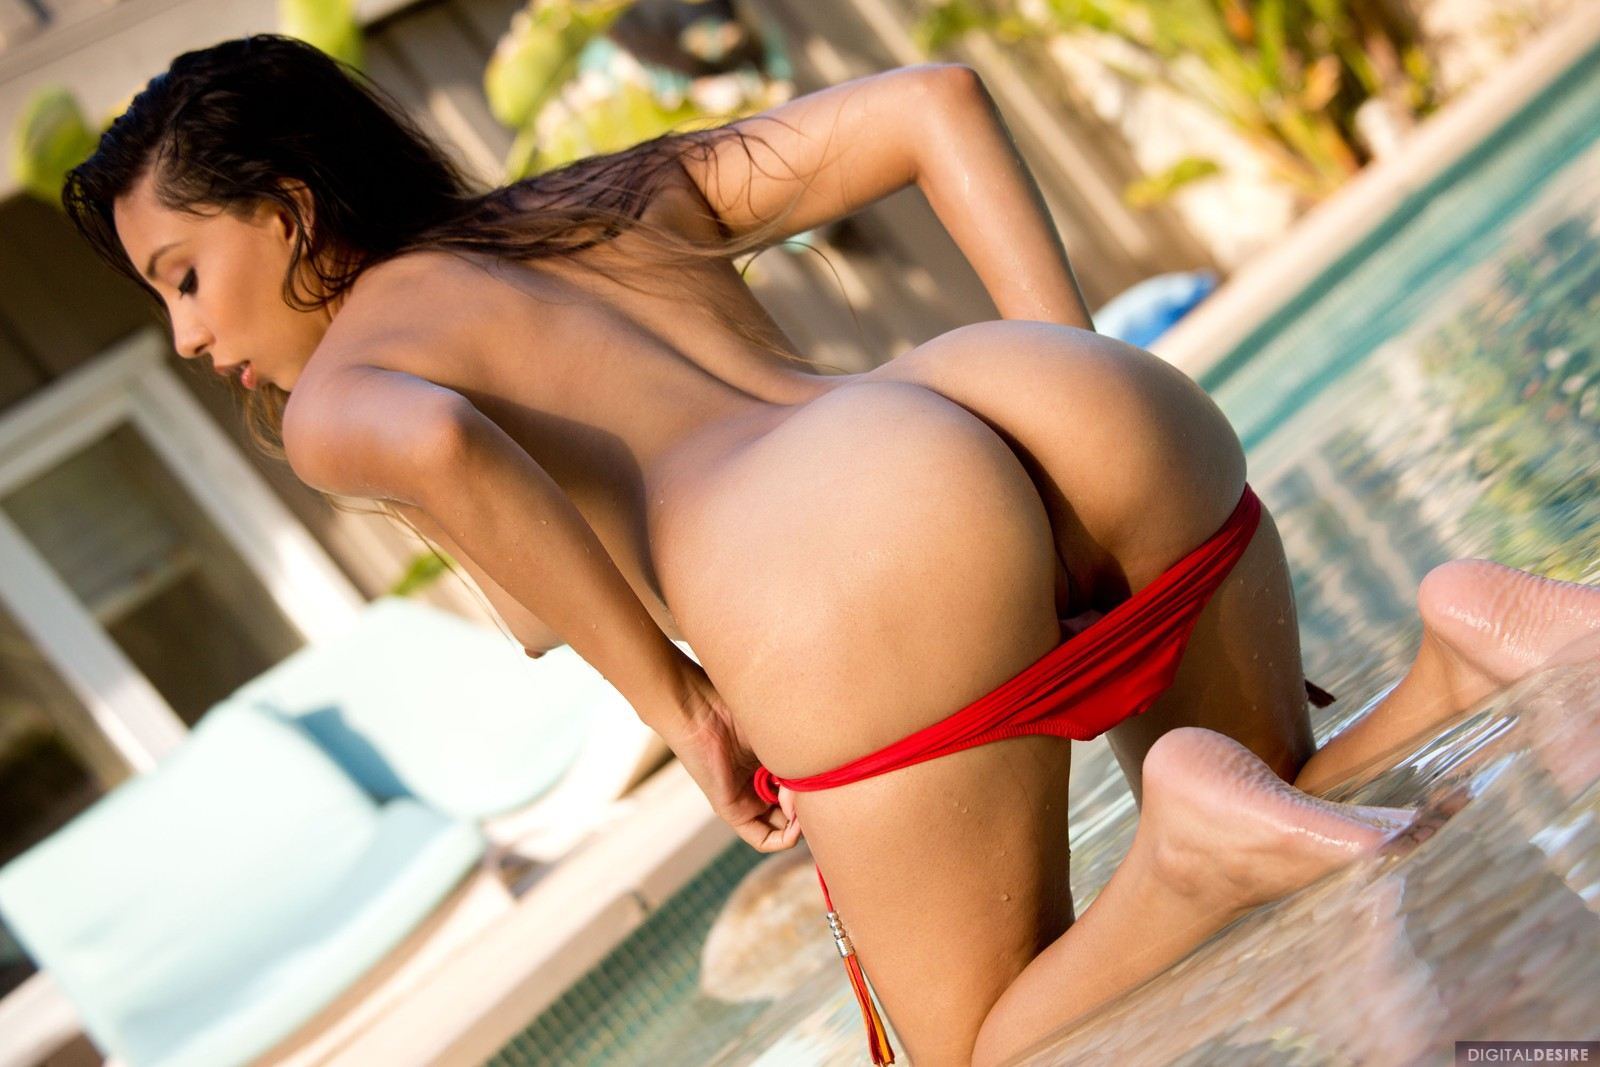 Ass, Brunette, Latina, Long Hair, Oiled and Wet, Outdoors, Panties, Pool, Solo picture featuring Alexis Love